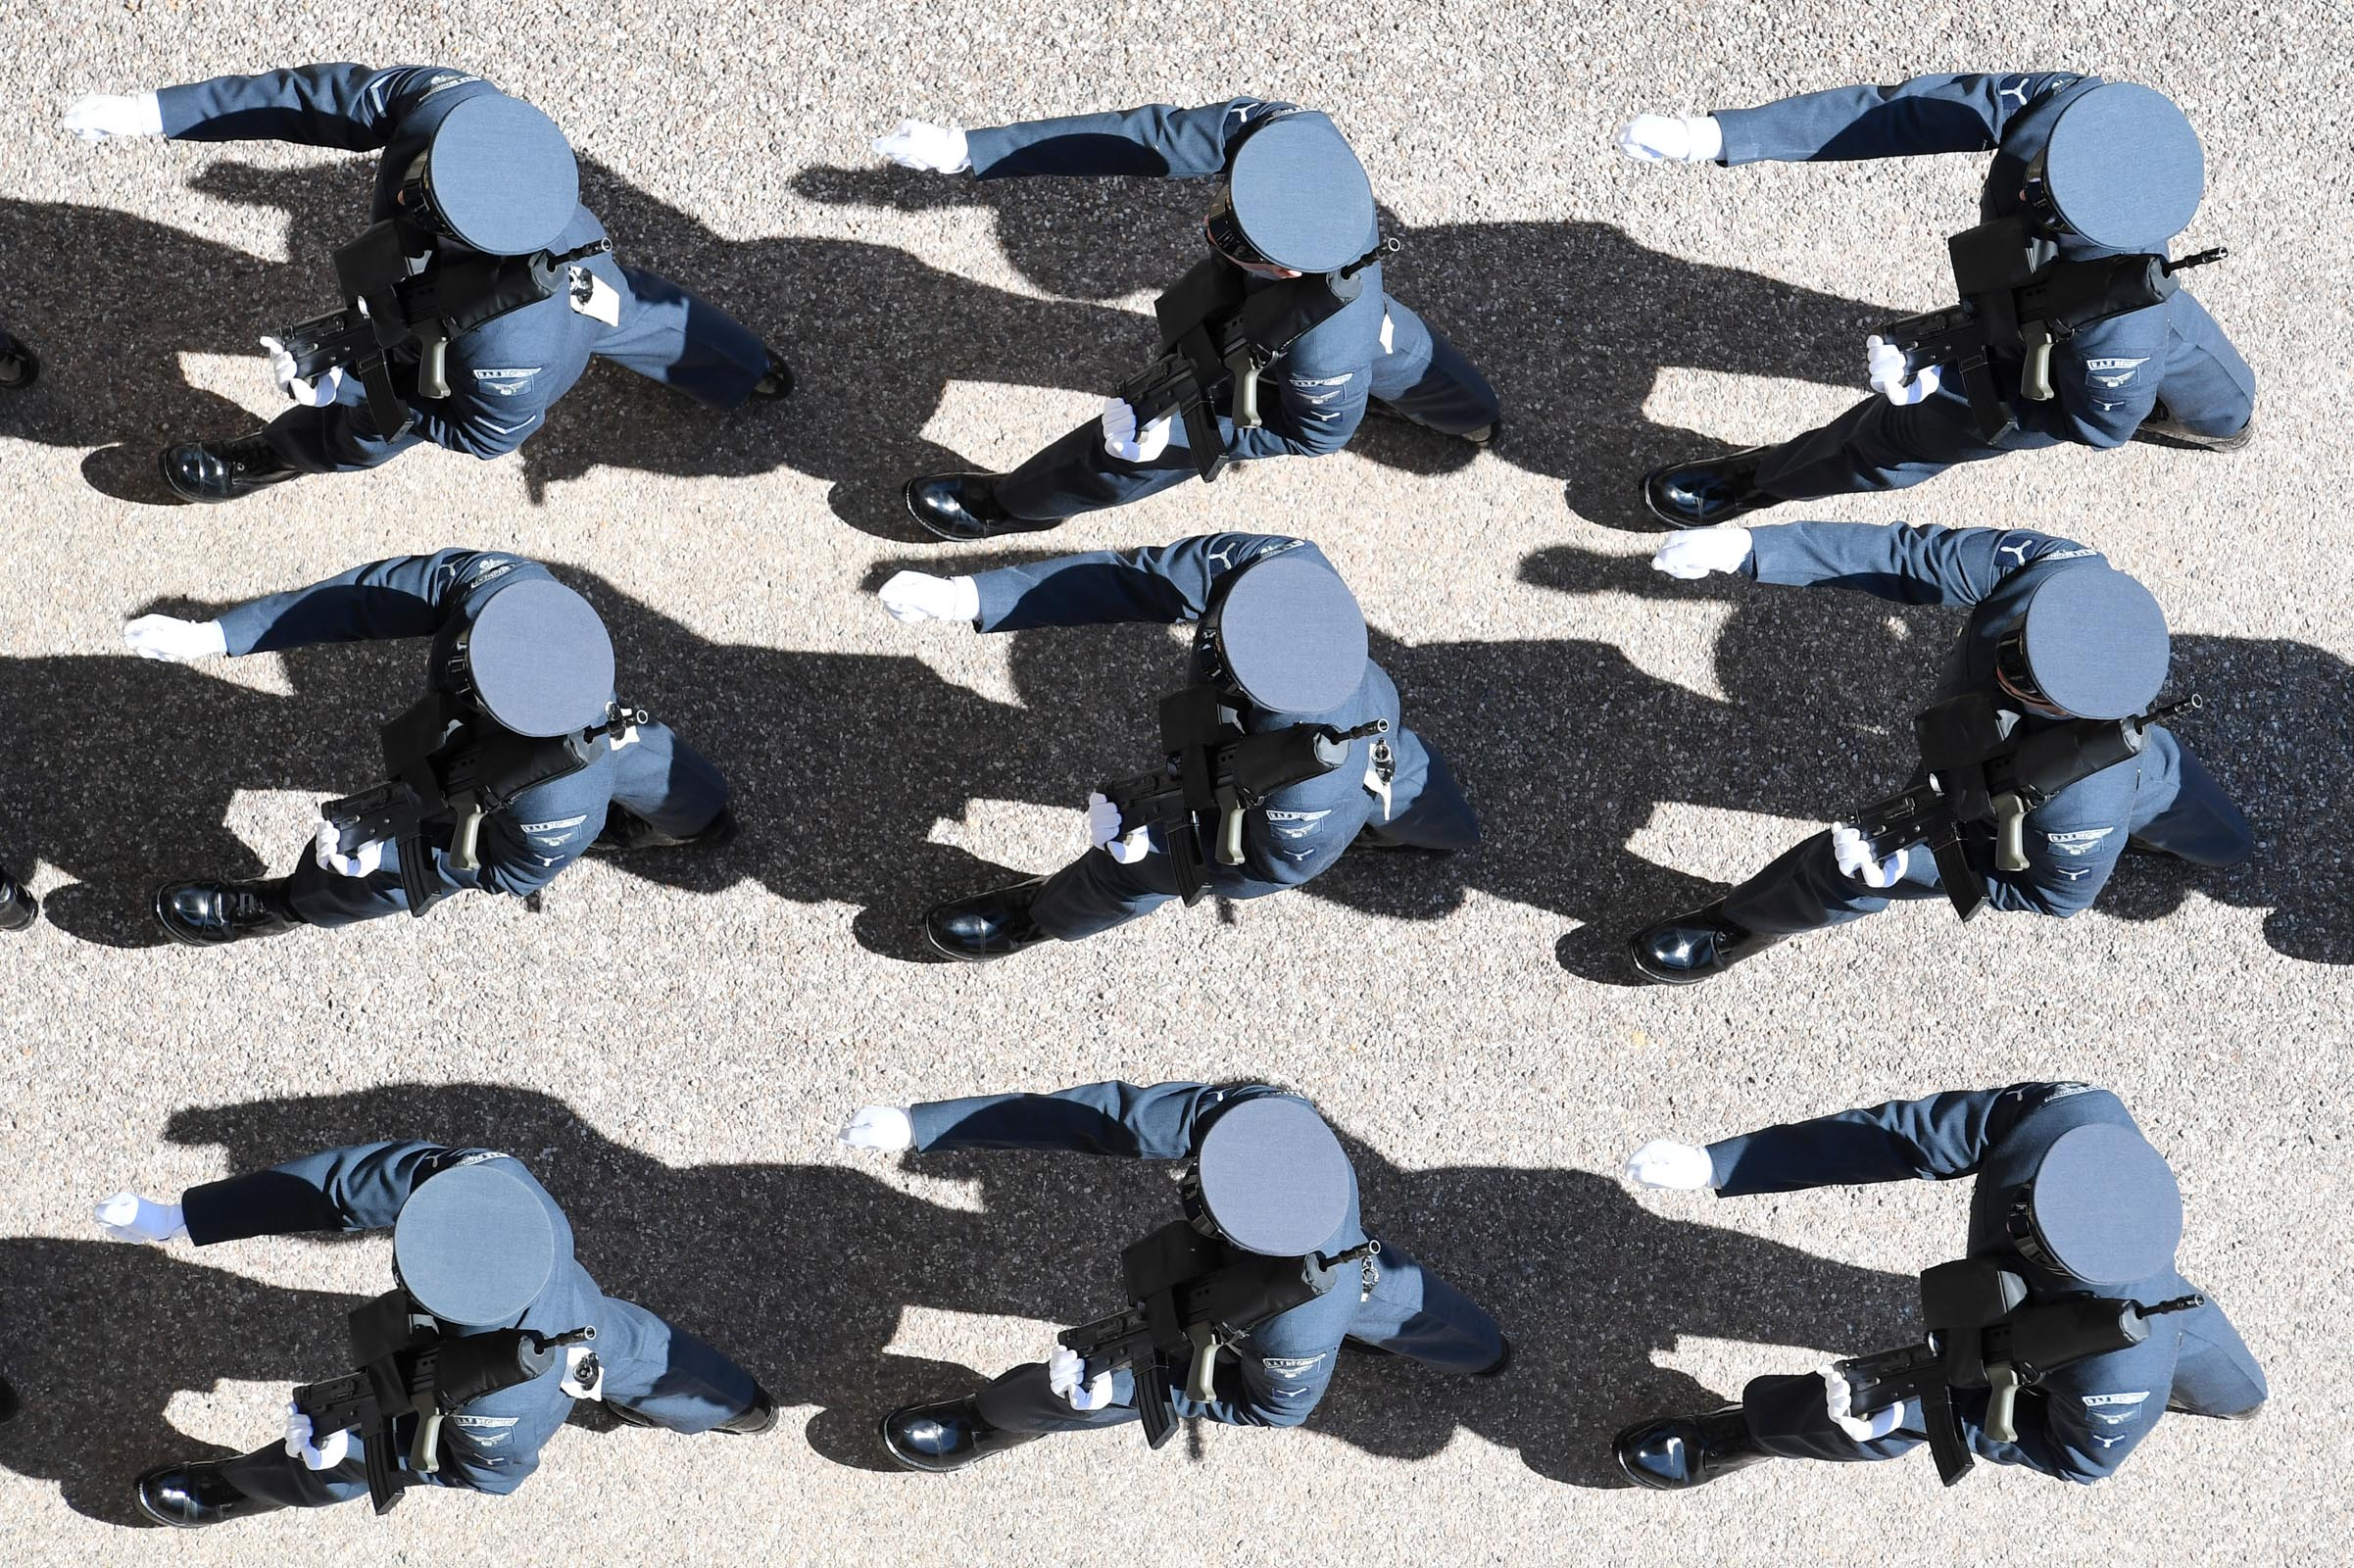 Airmen of the Royal Air Force march ahead of the funeral of Prince Philip.